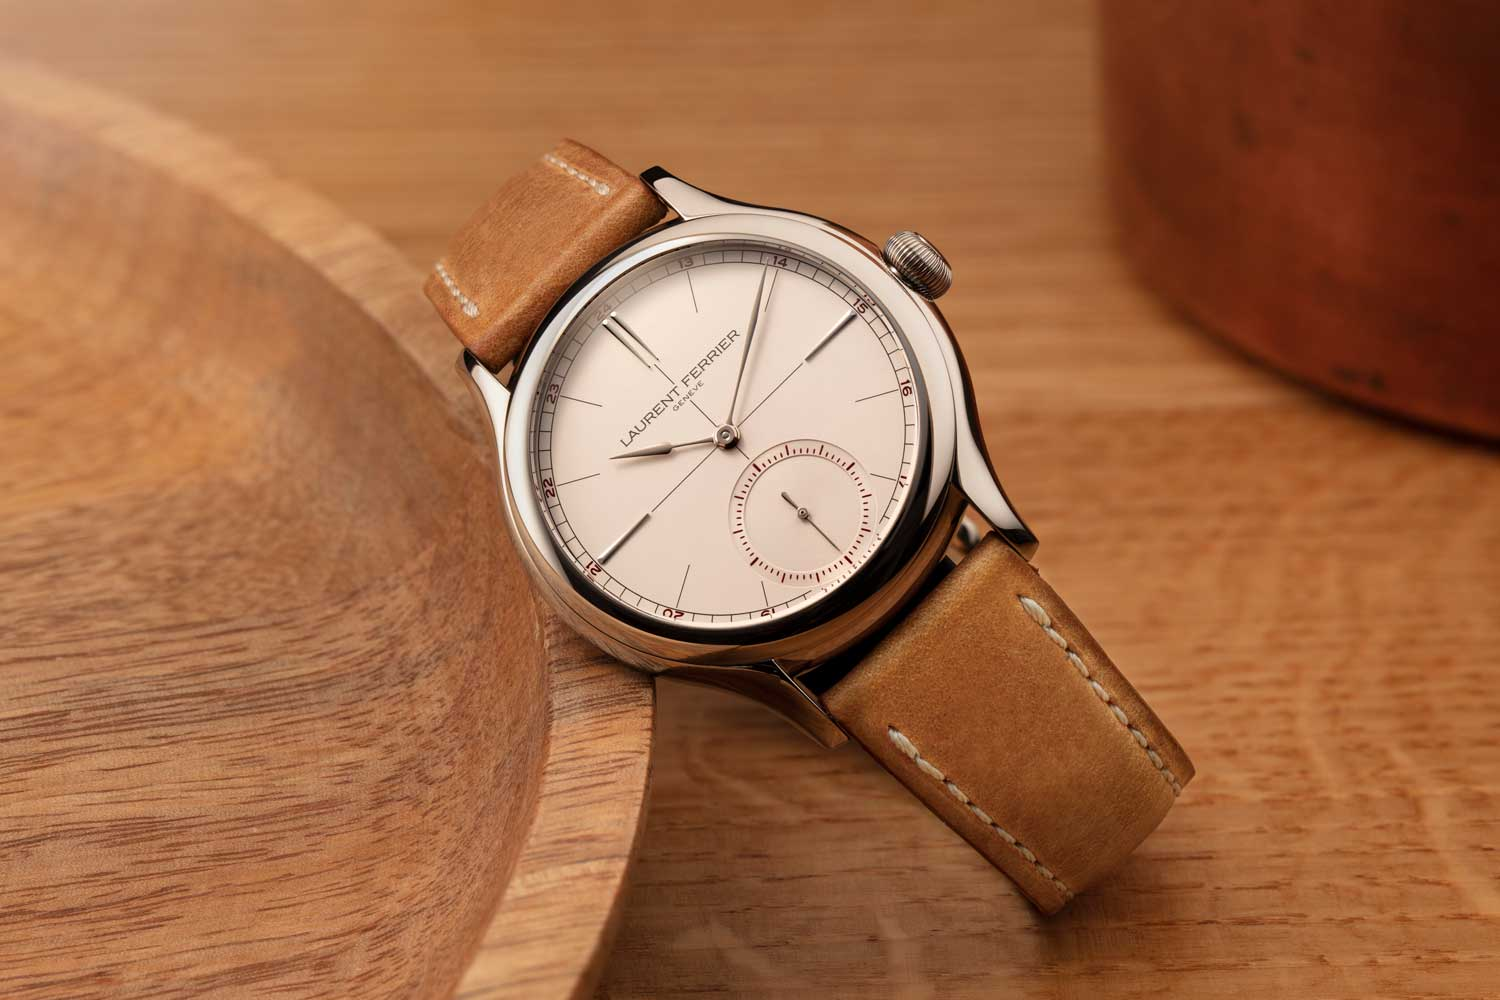 Laurent Ferrier Classic Origin Opaline in Grade 5 Titanium